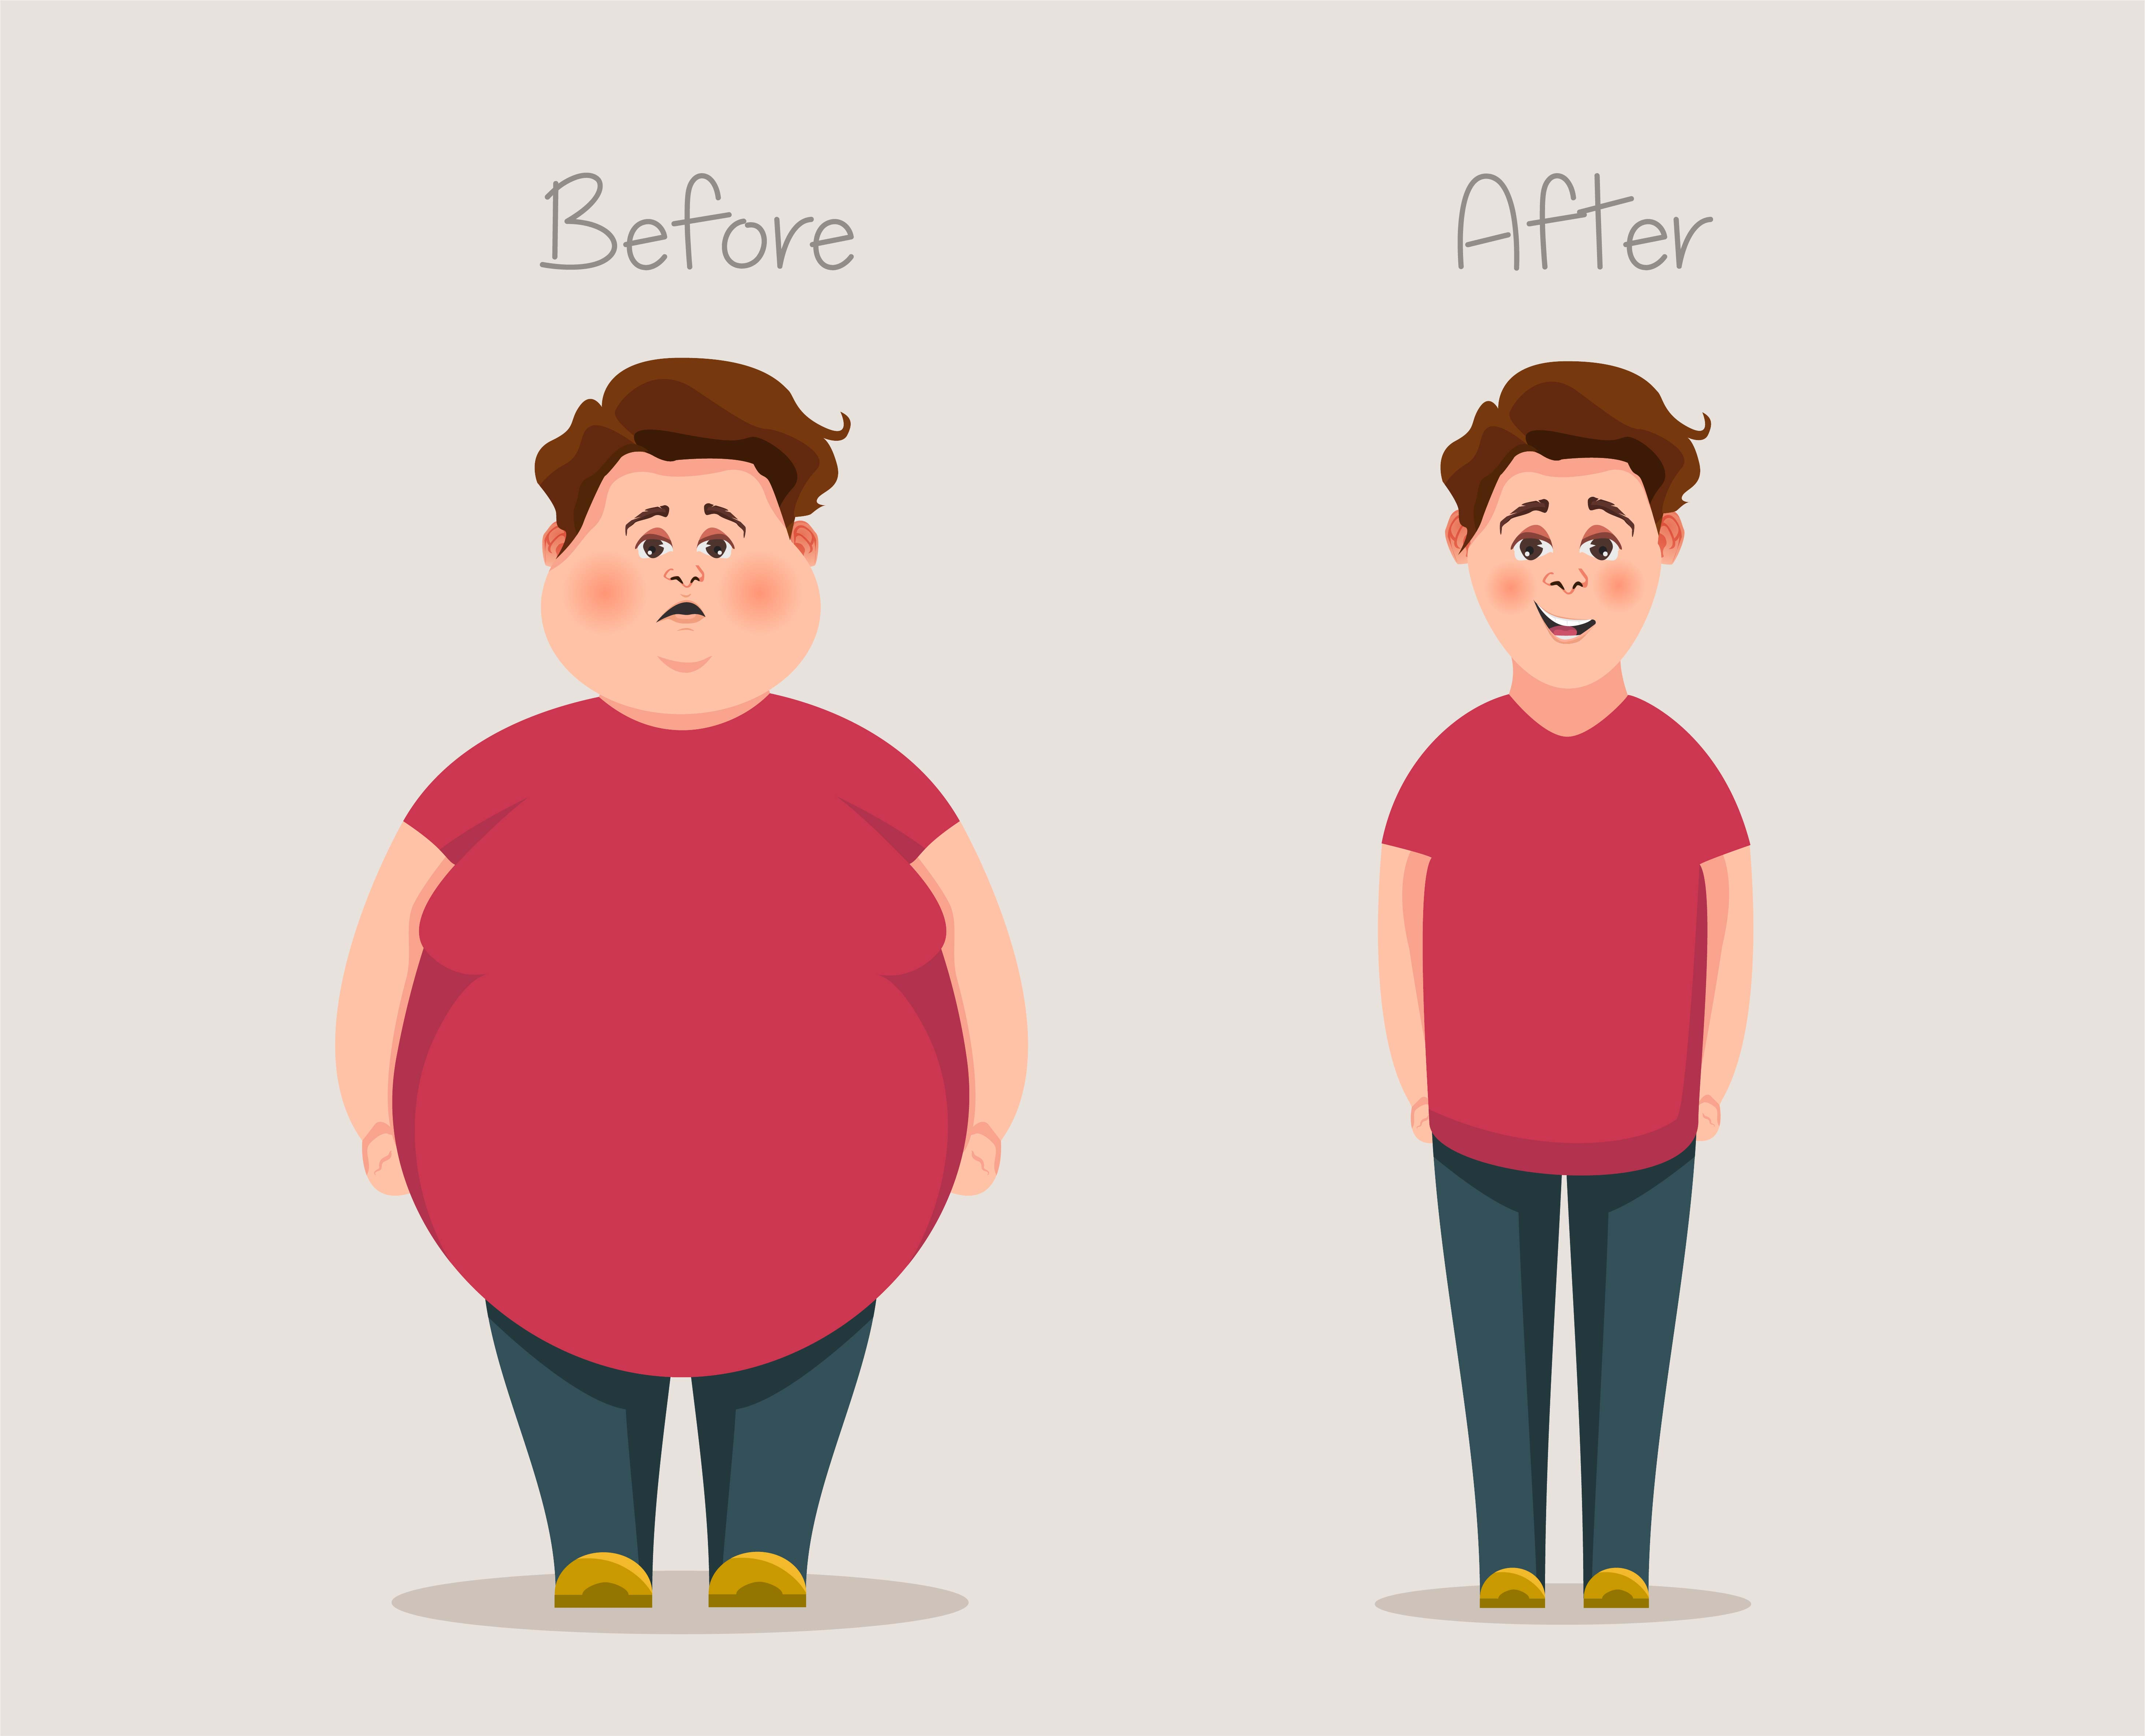 Fat and skinny guys. Concept of weight. Before and after